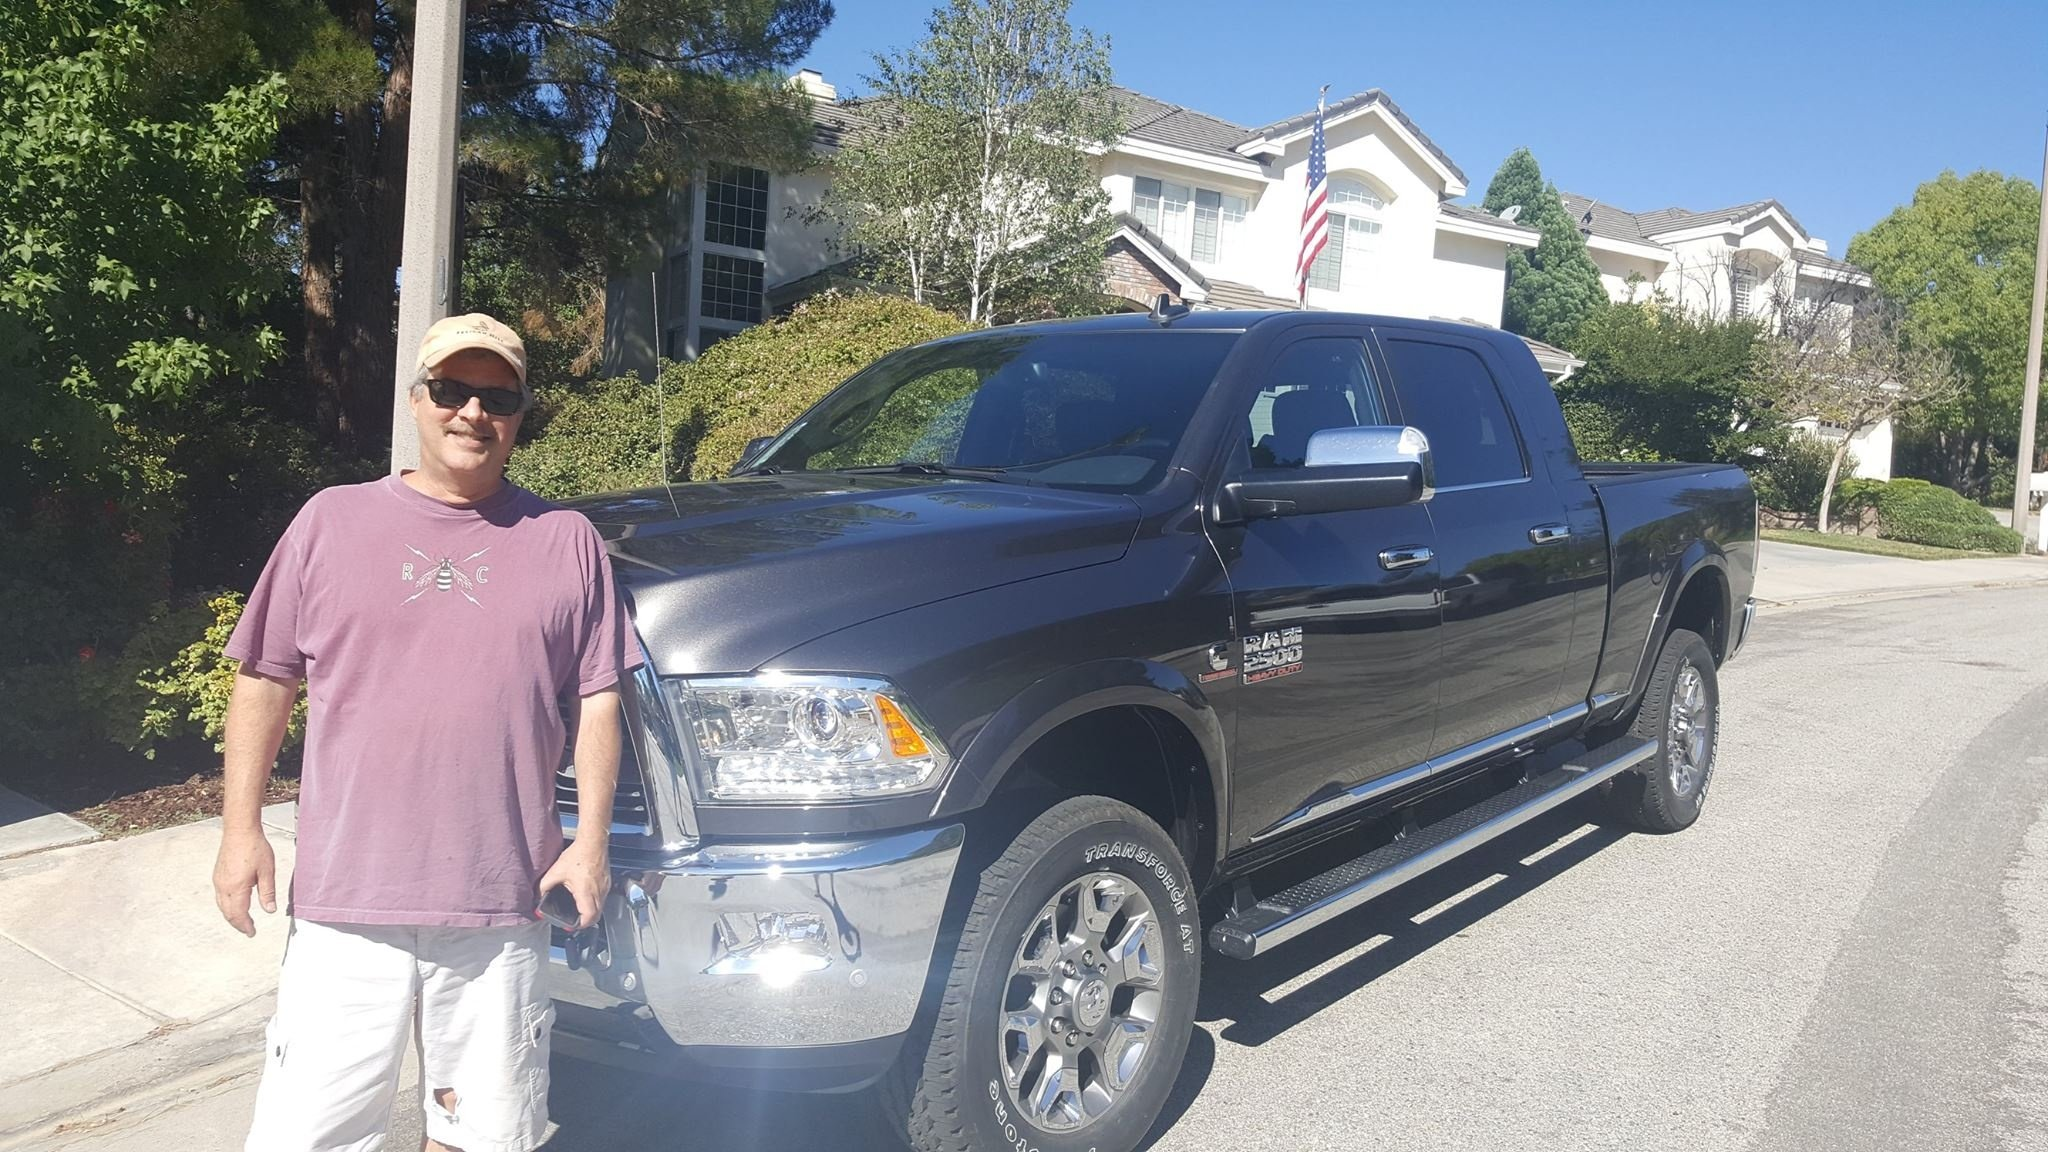 Dodge Truck Purchase - Thanks Kevin!  Enjoy it in Colorado!